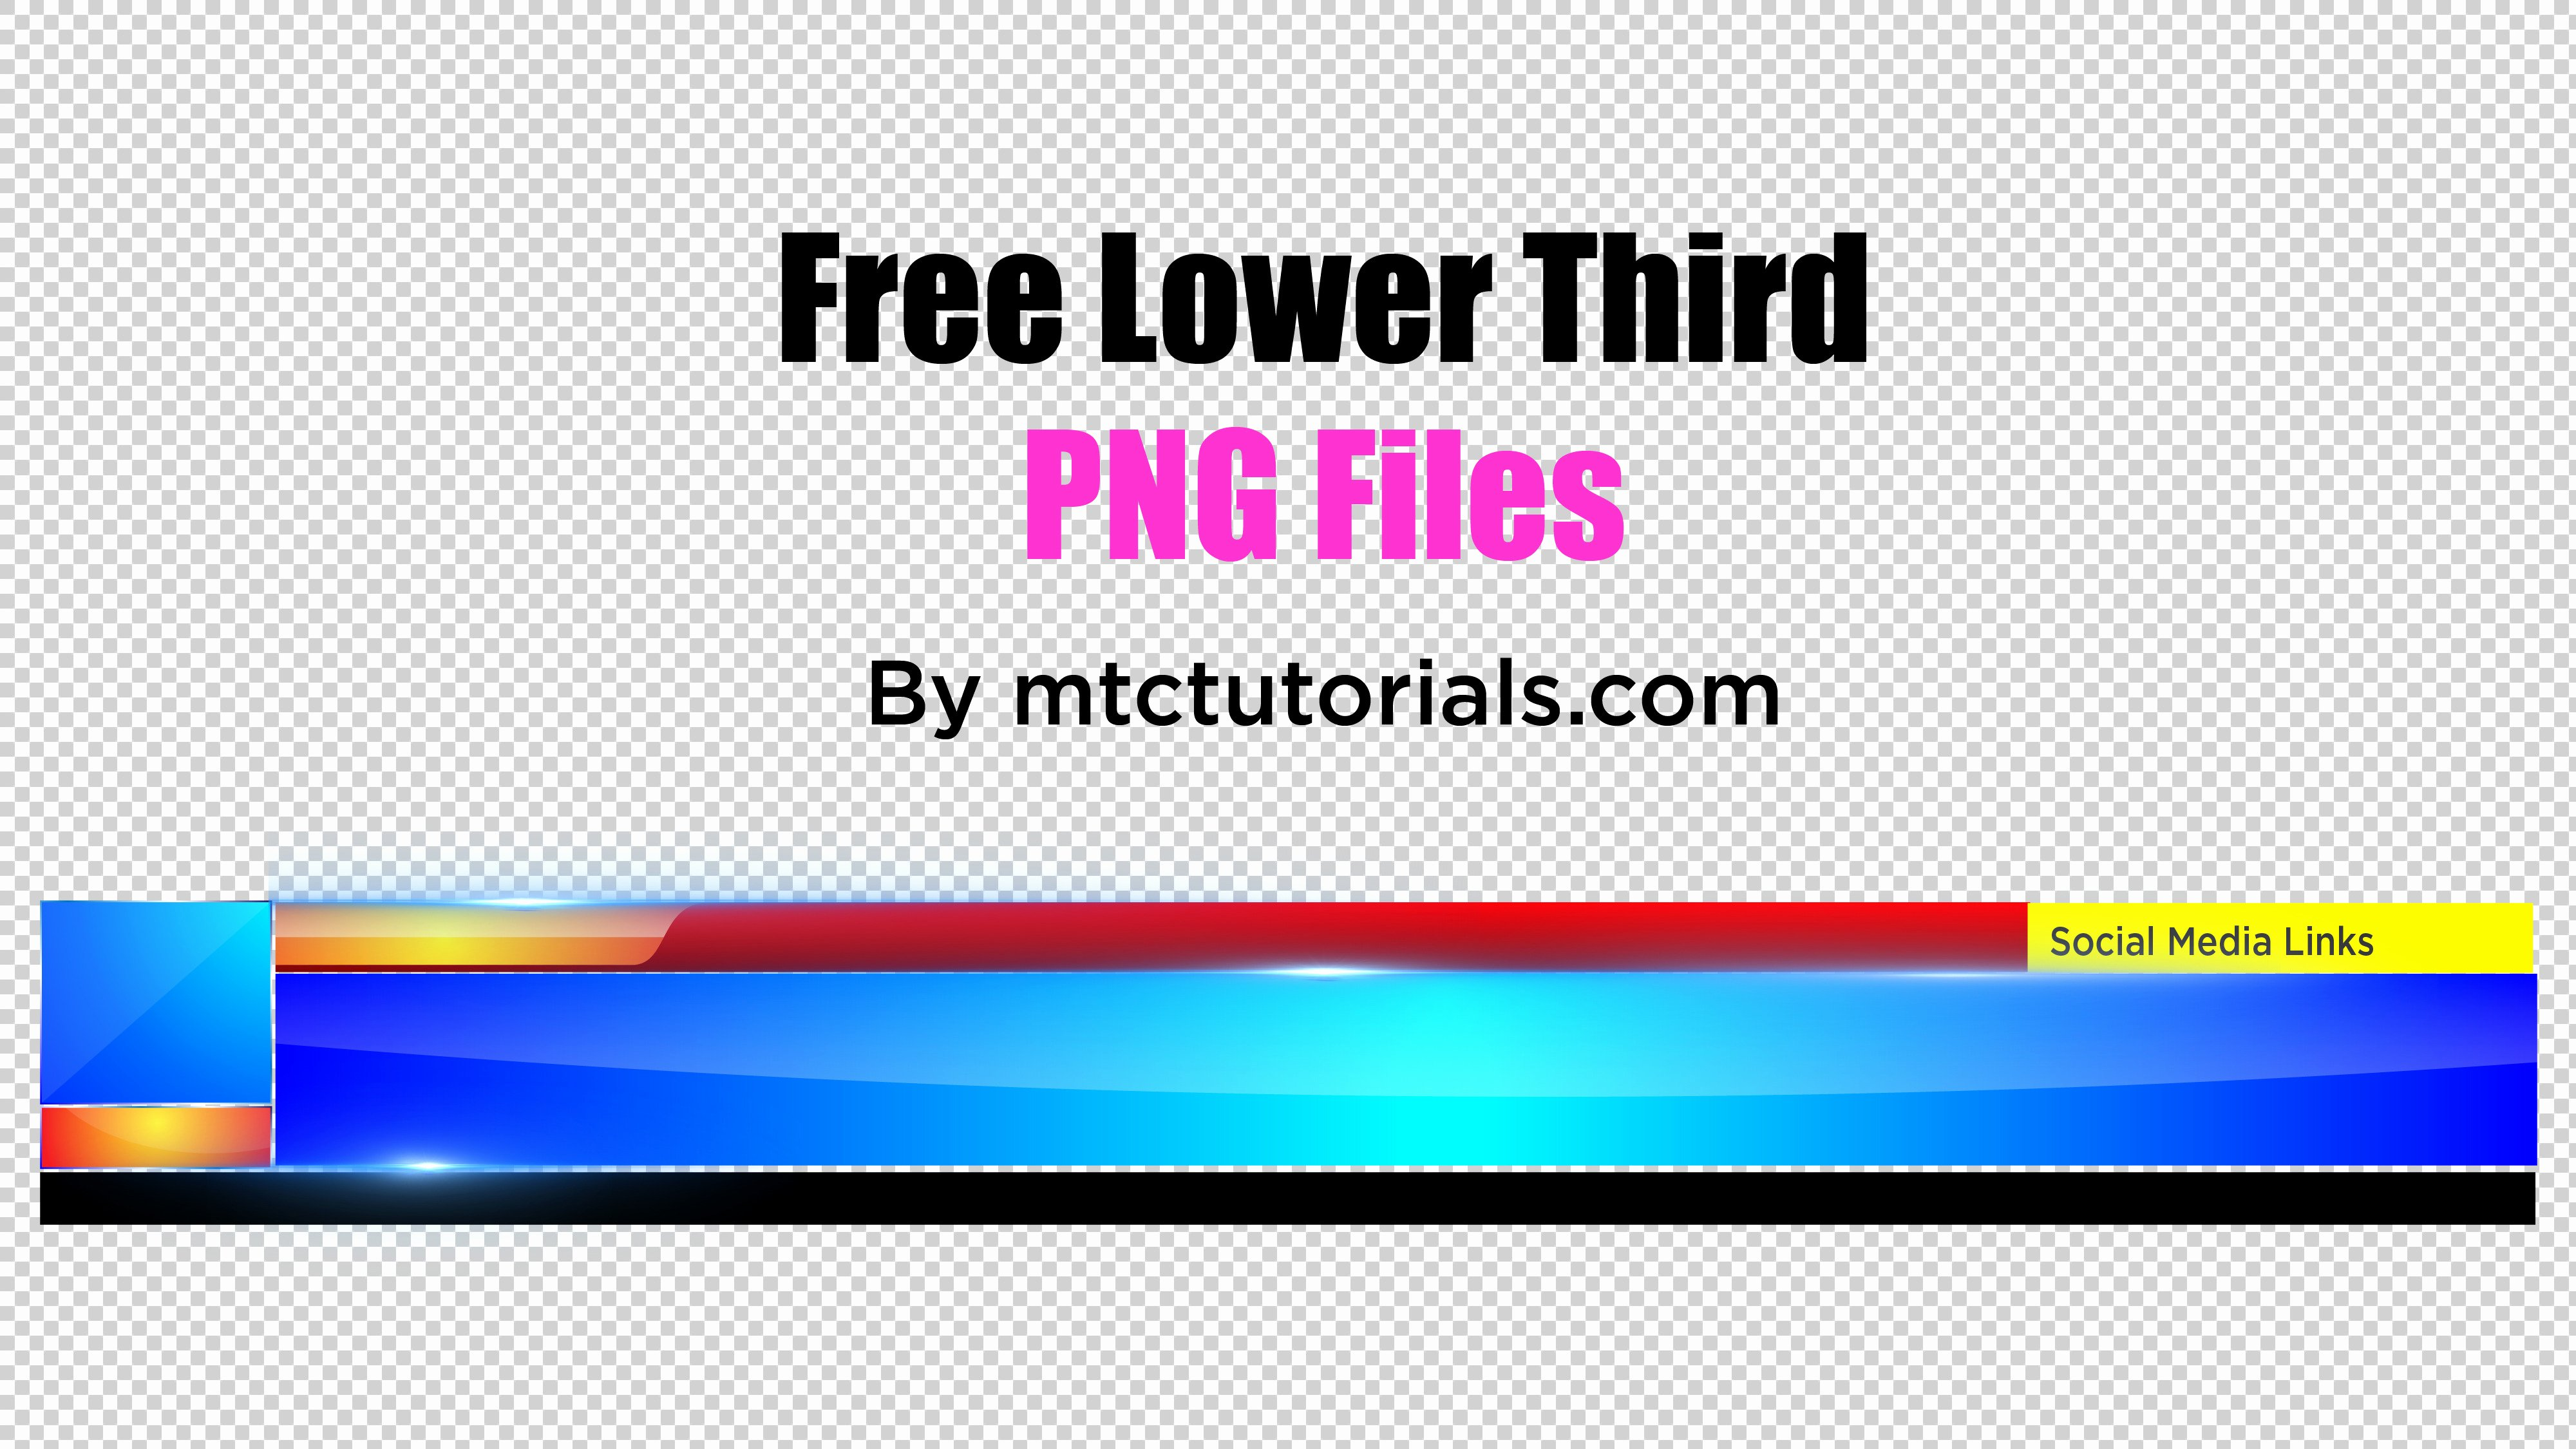 Free Lower Third Templates Photoshop Beautiful Royalty Free Professional Lower Third S Png Free Lower Third Templates Mtc Tutorials Mtc